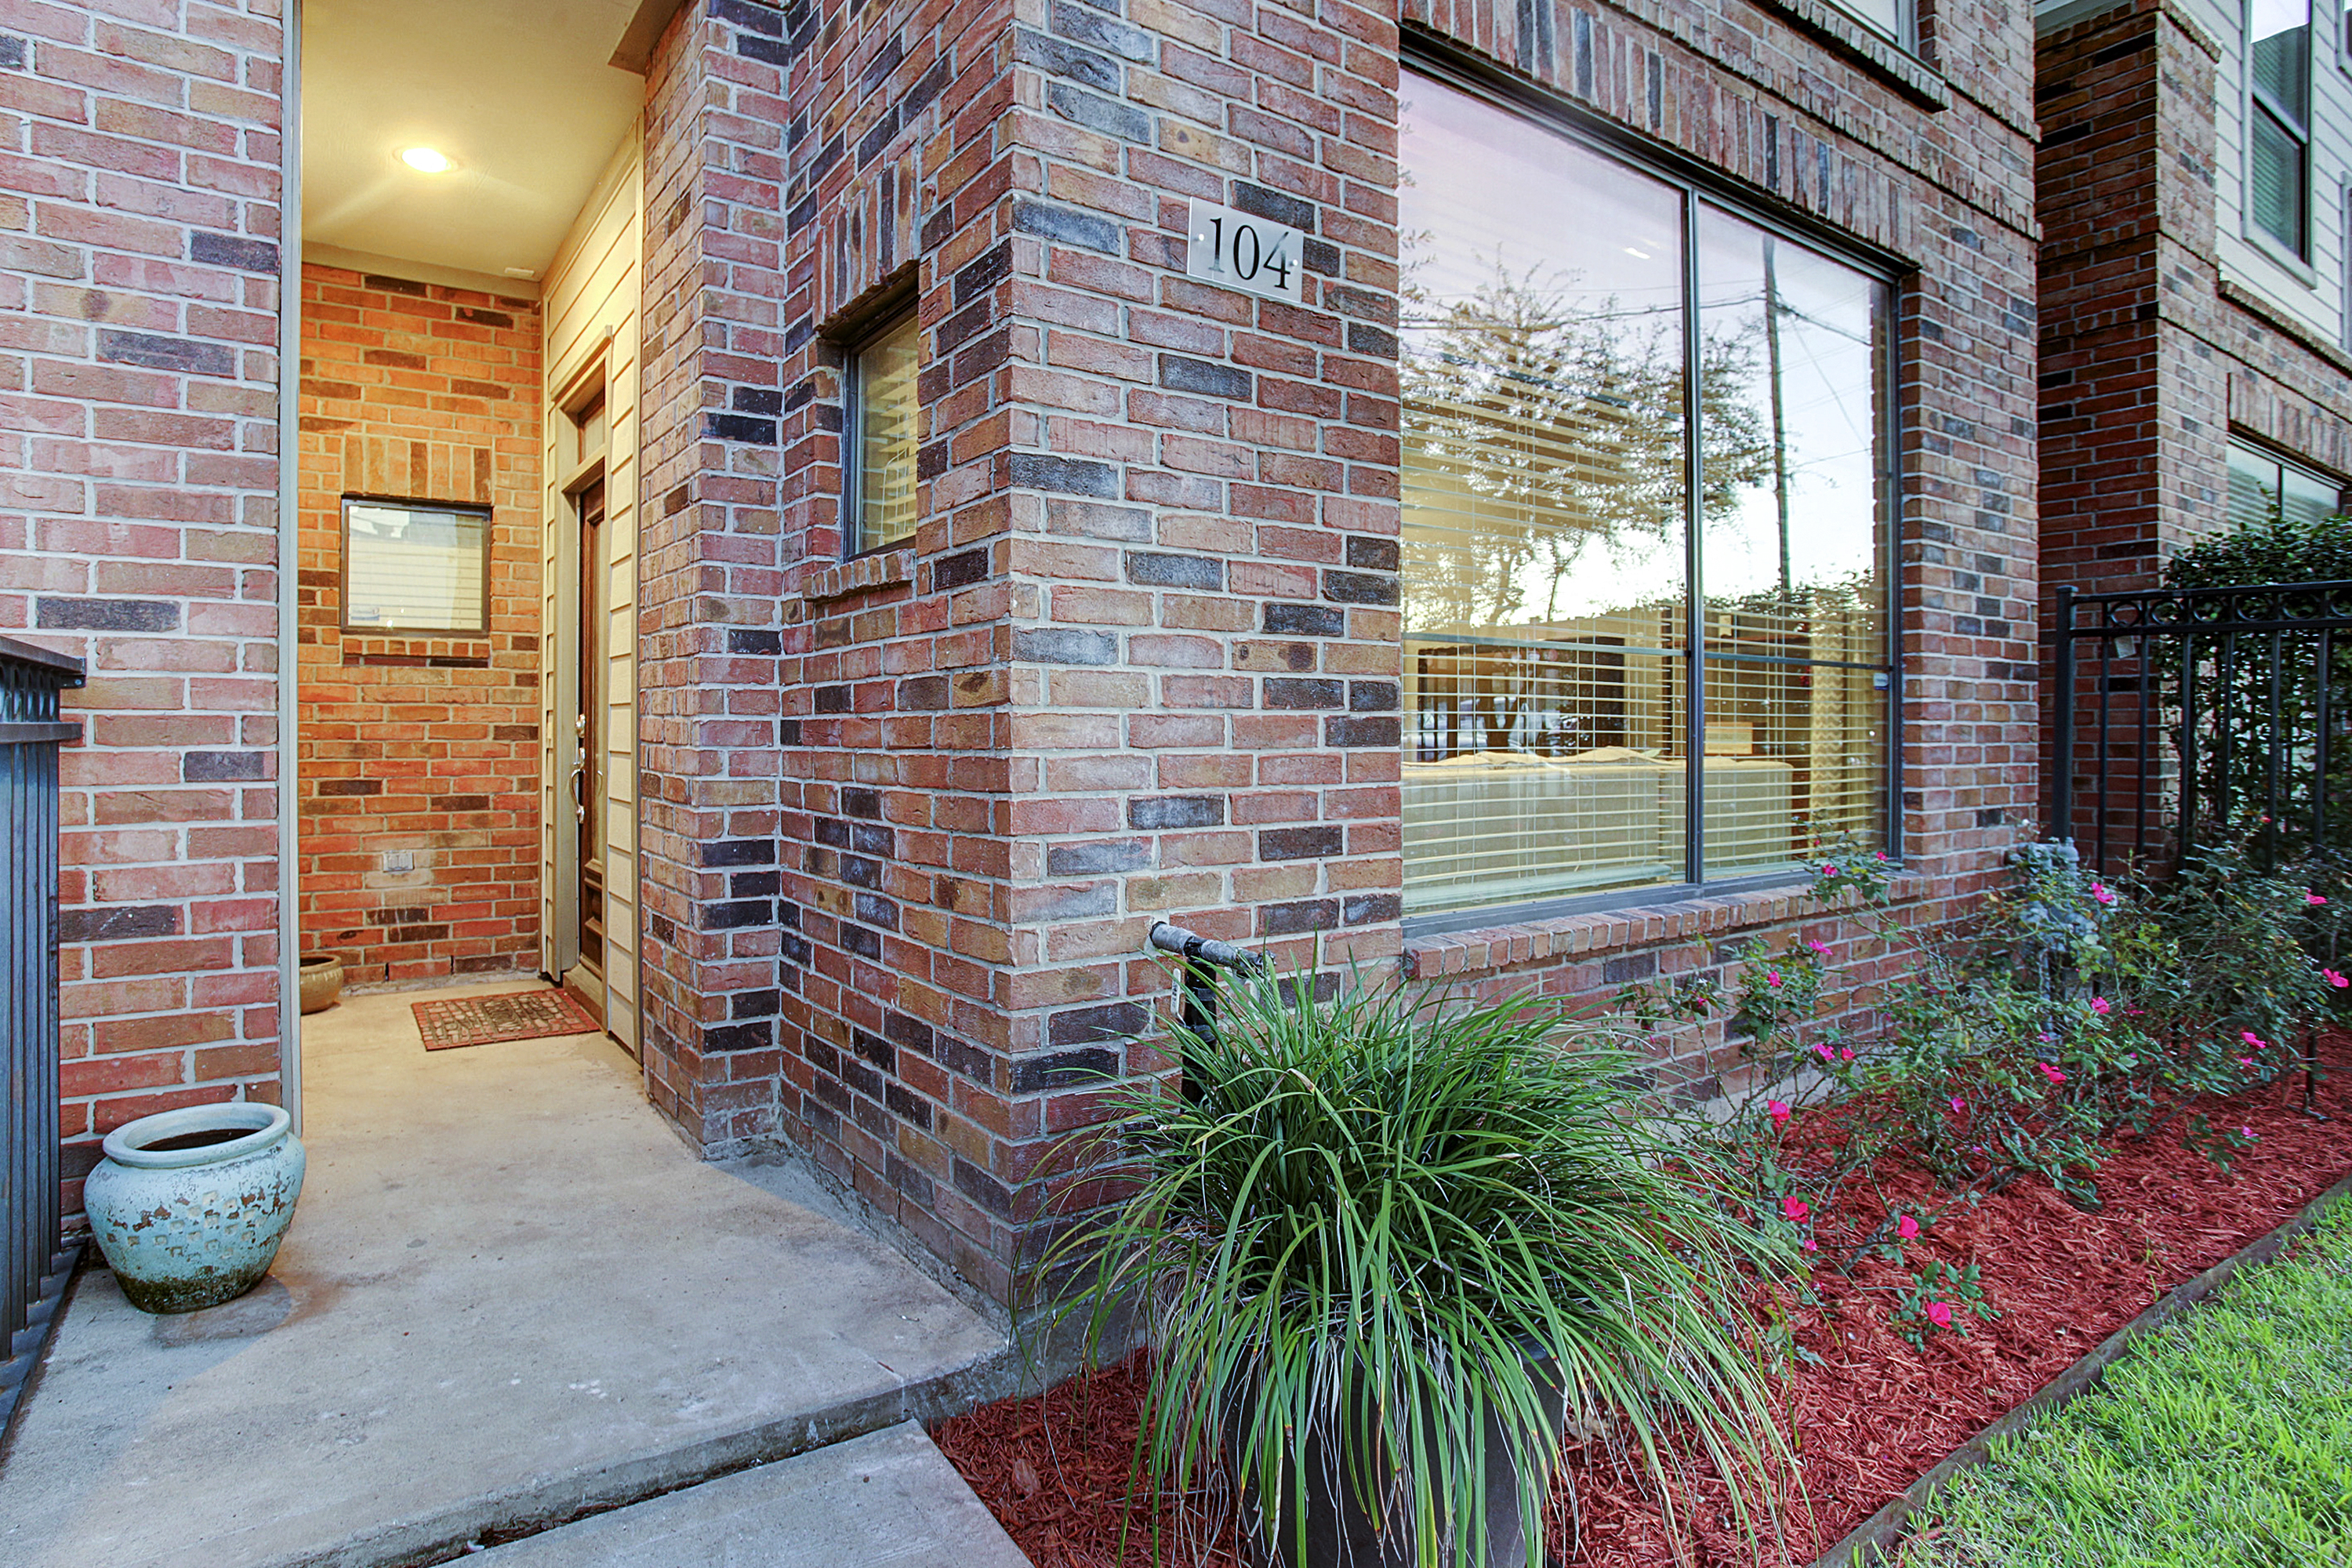 2504 Rusk - Welcome Home